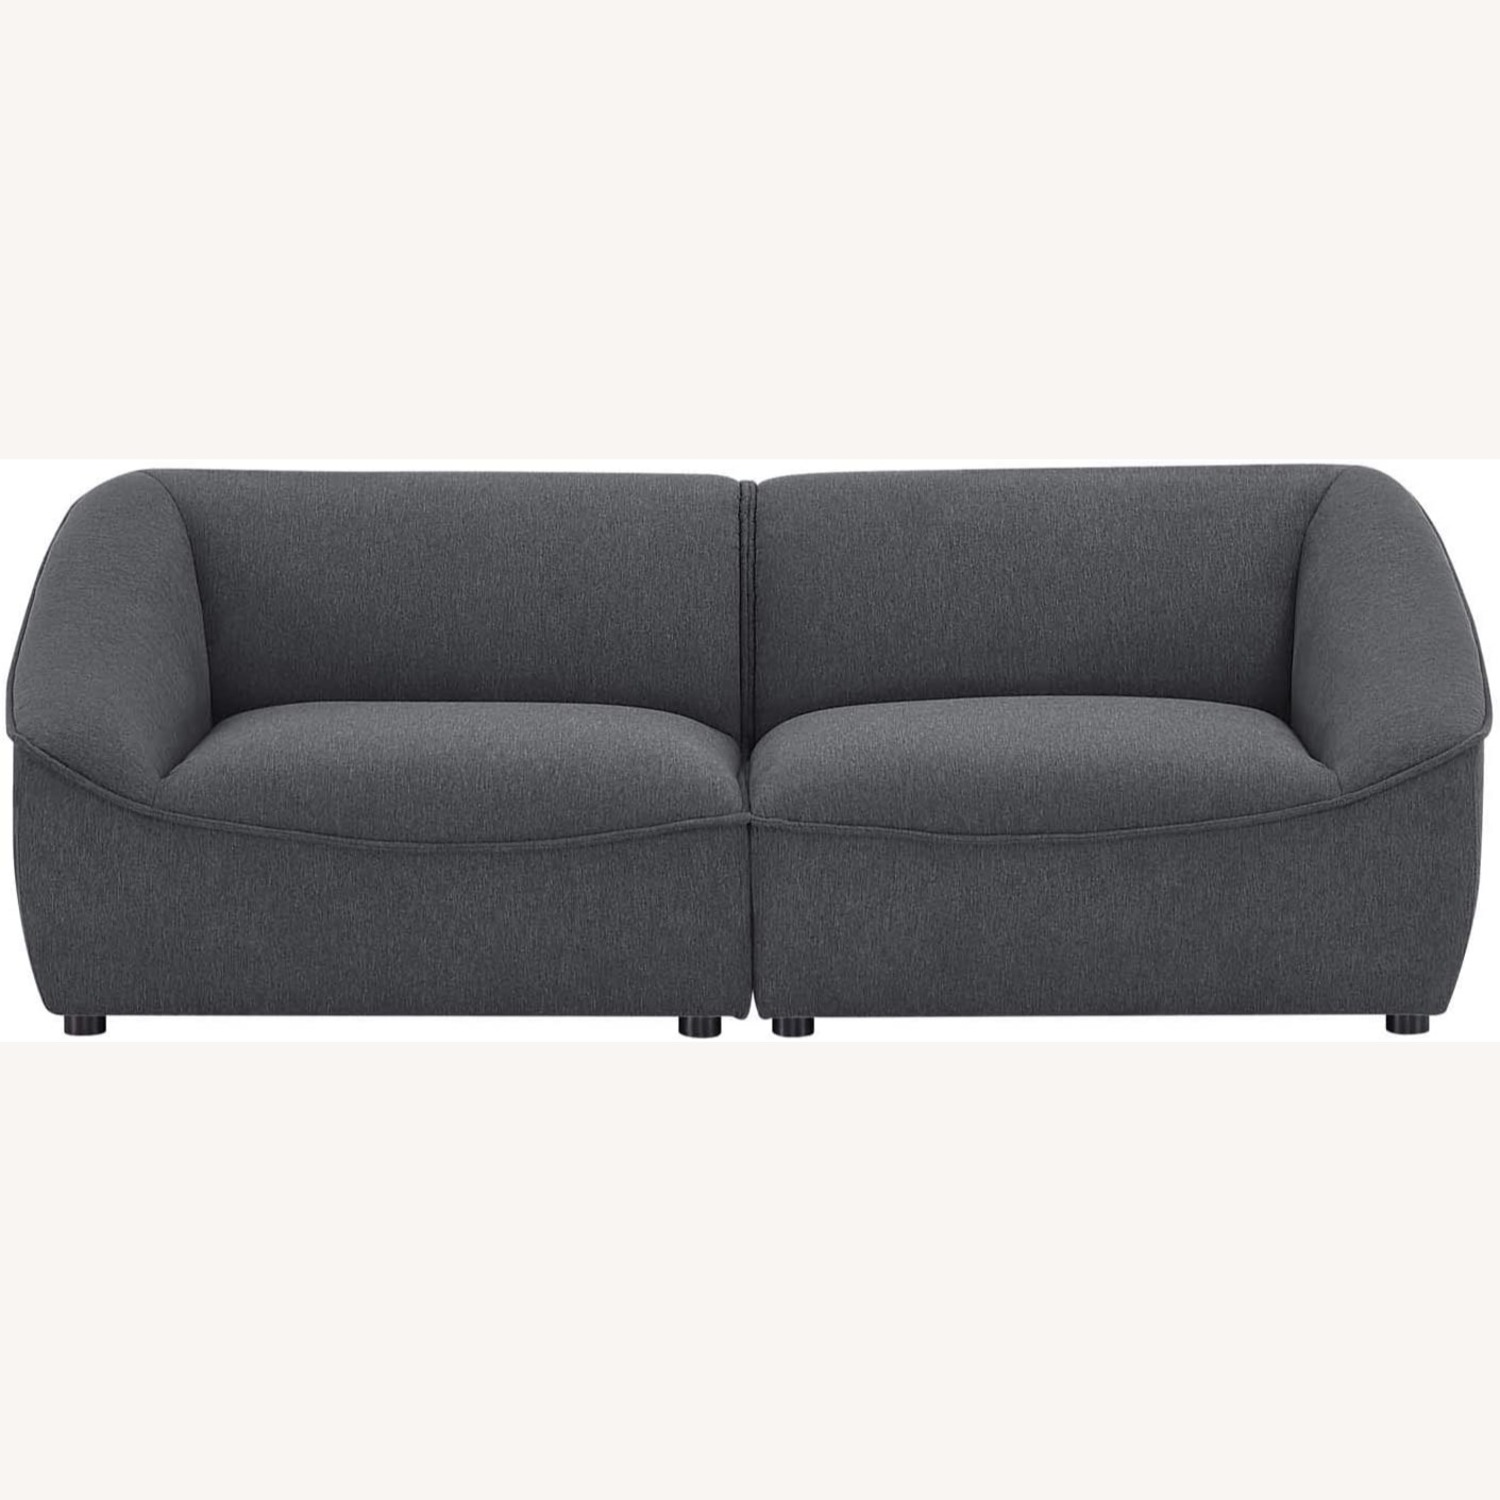 2-Piece Modern Loveseat In Charcoal Finish - image-1